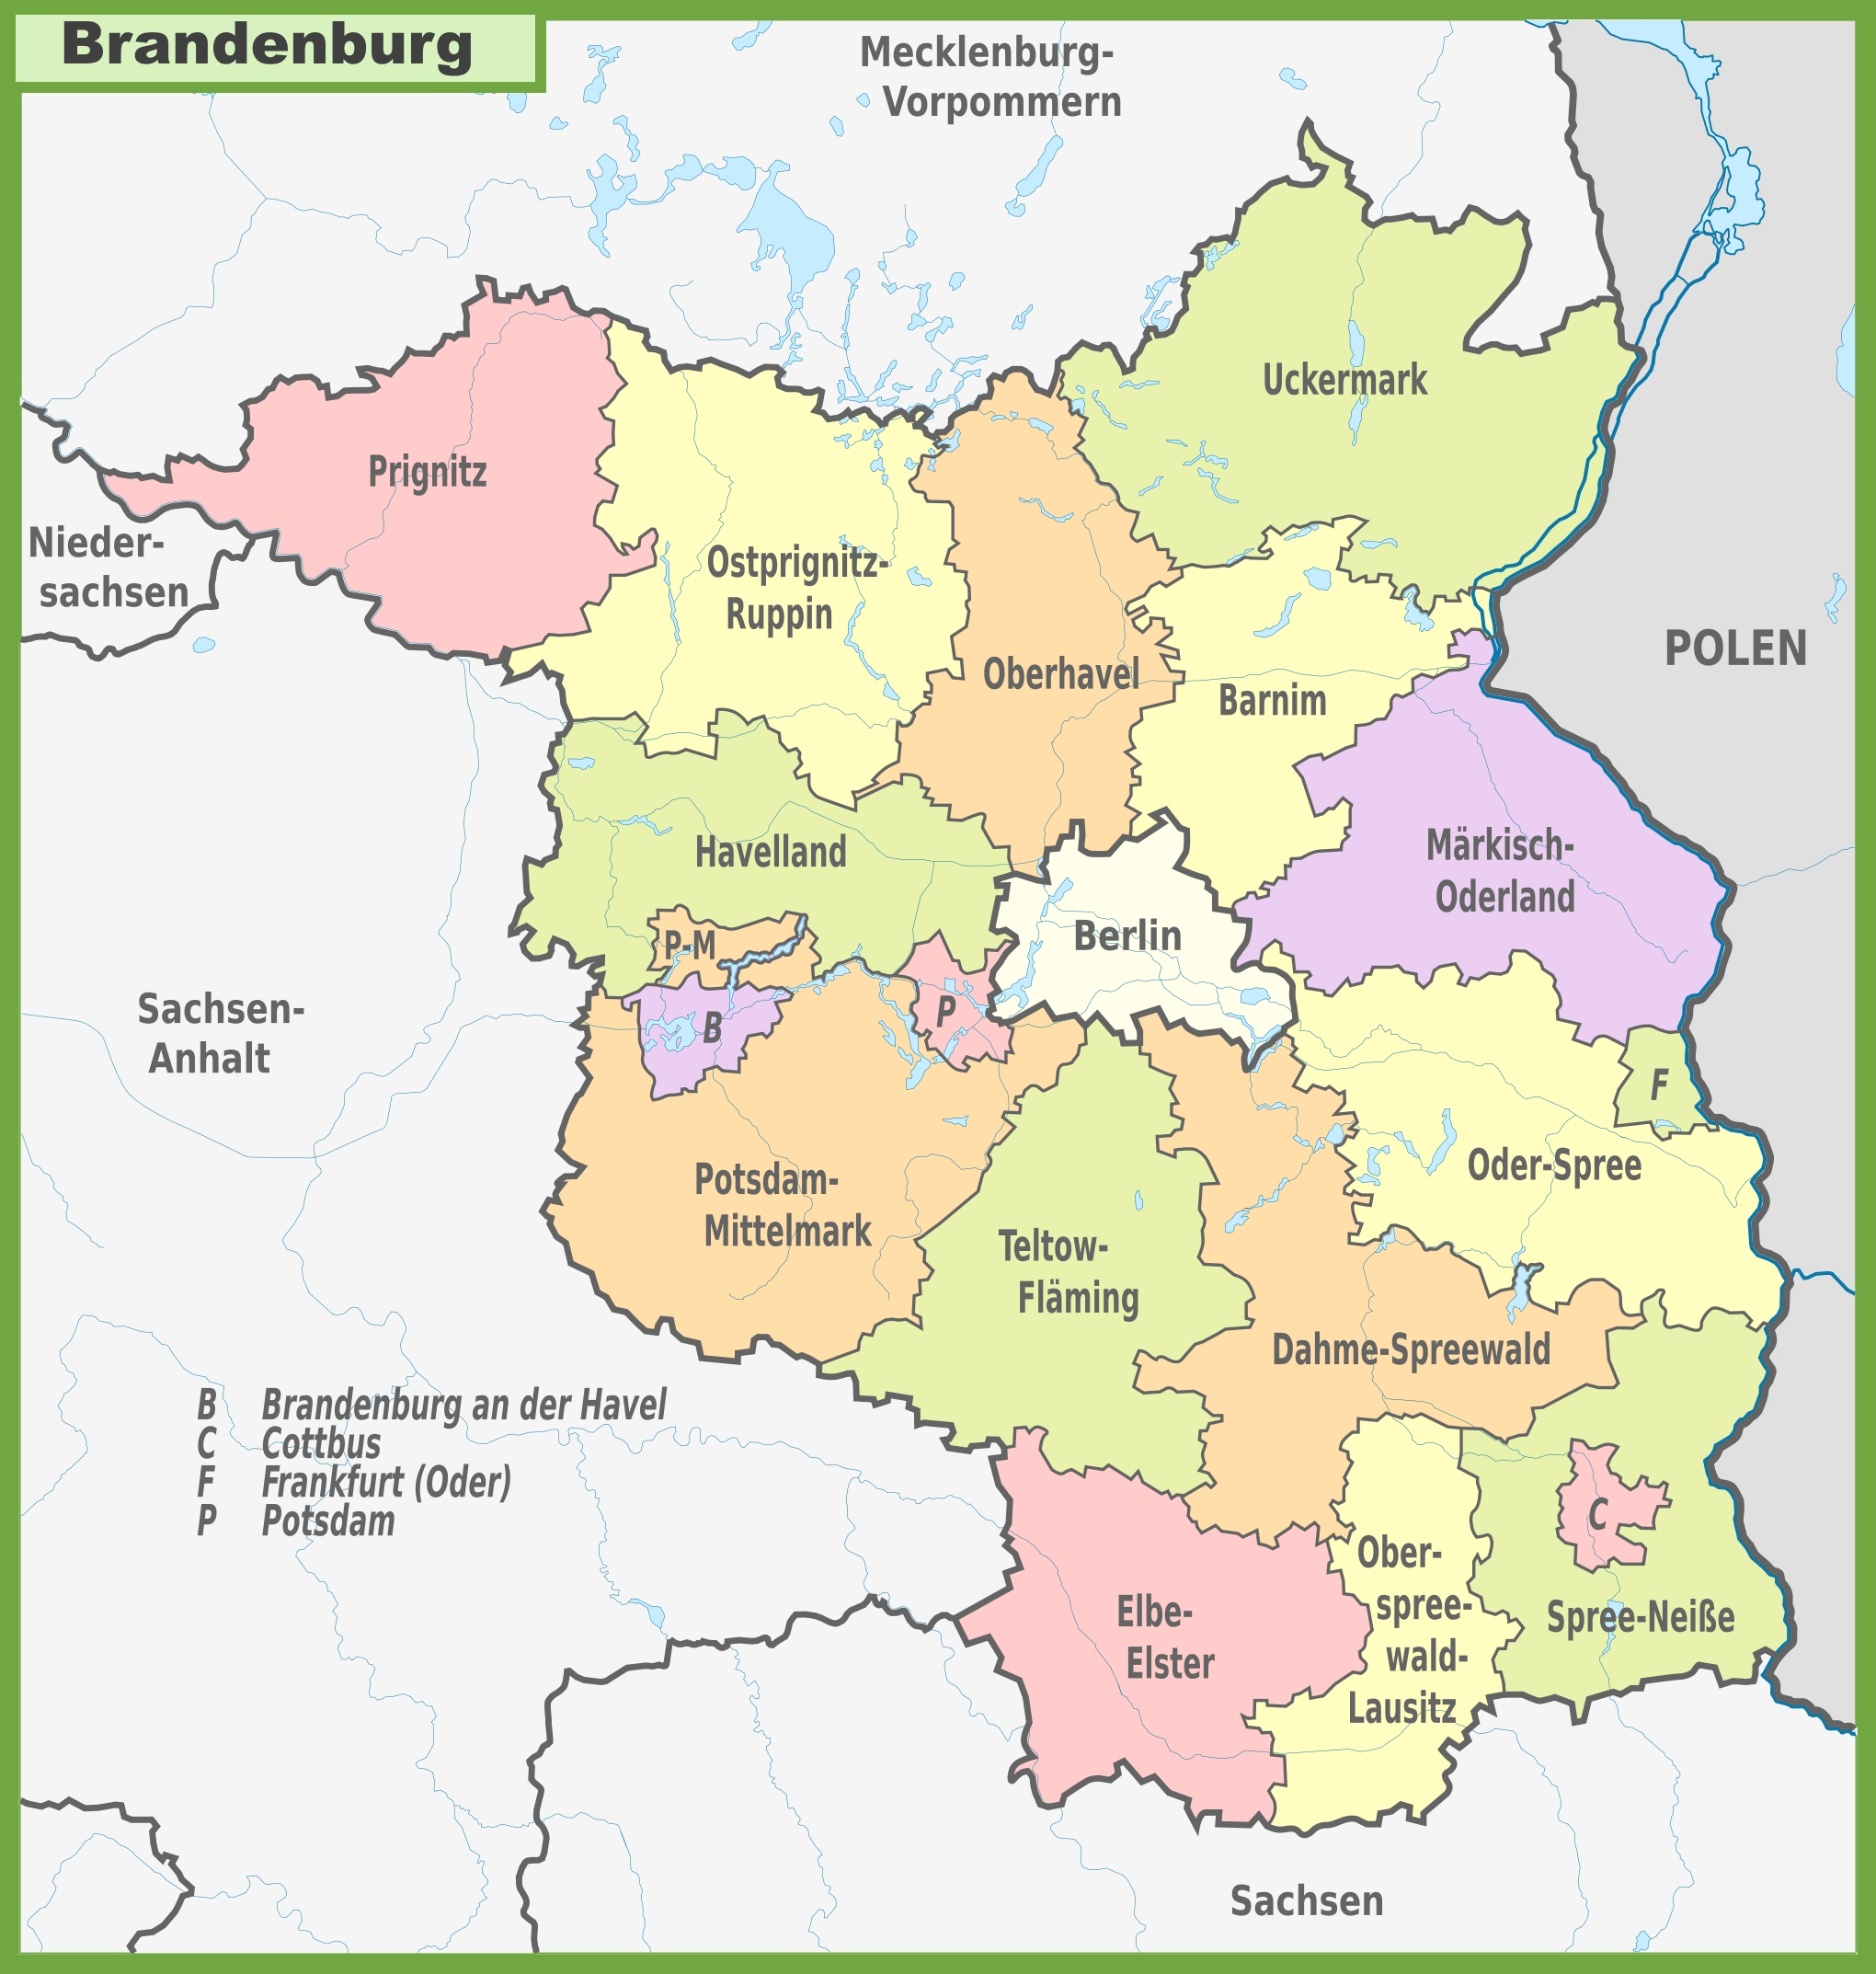 Administrative divisions map of Brandenburg